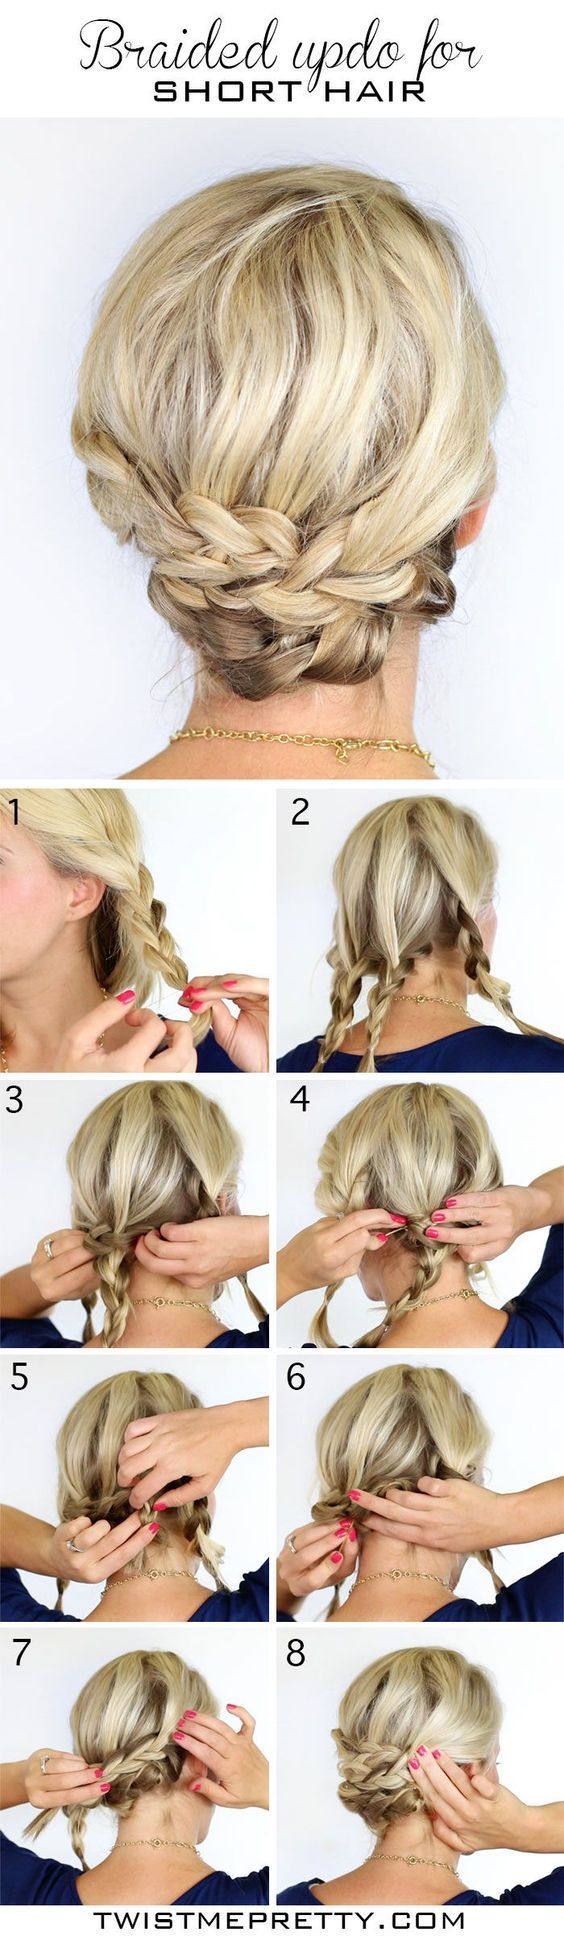 Braided Updo Hairstyle for Short Hair: